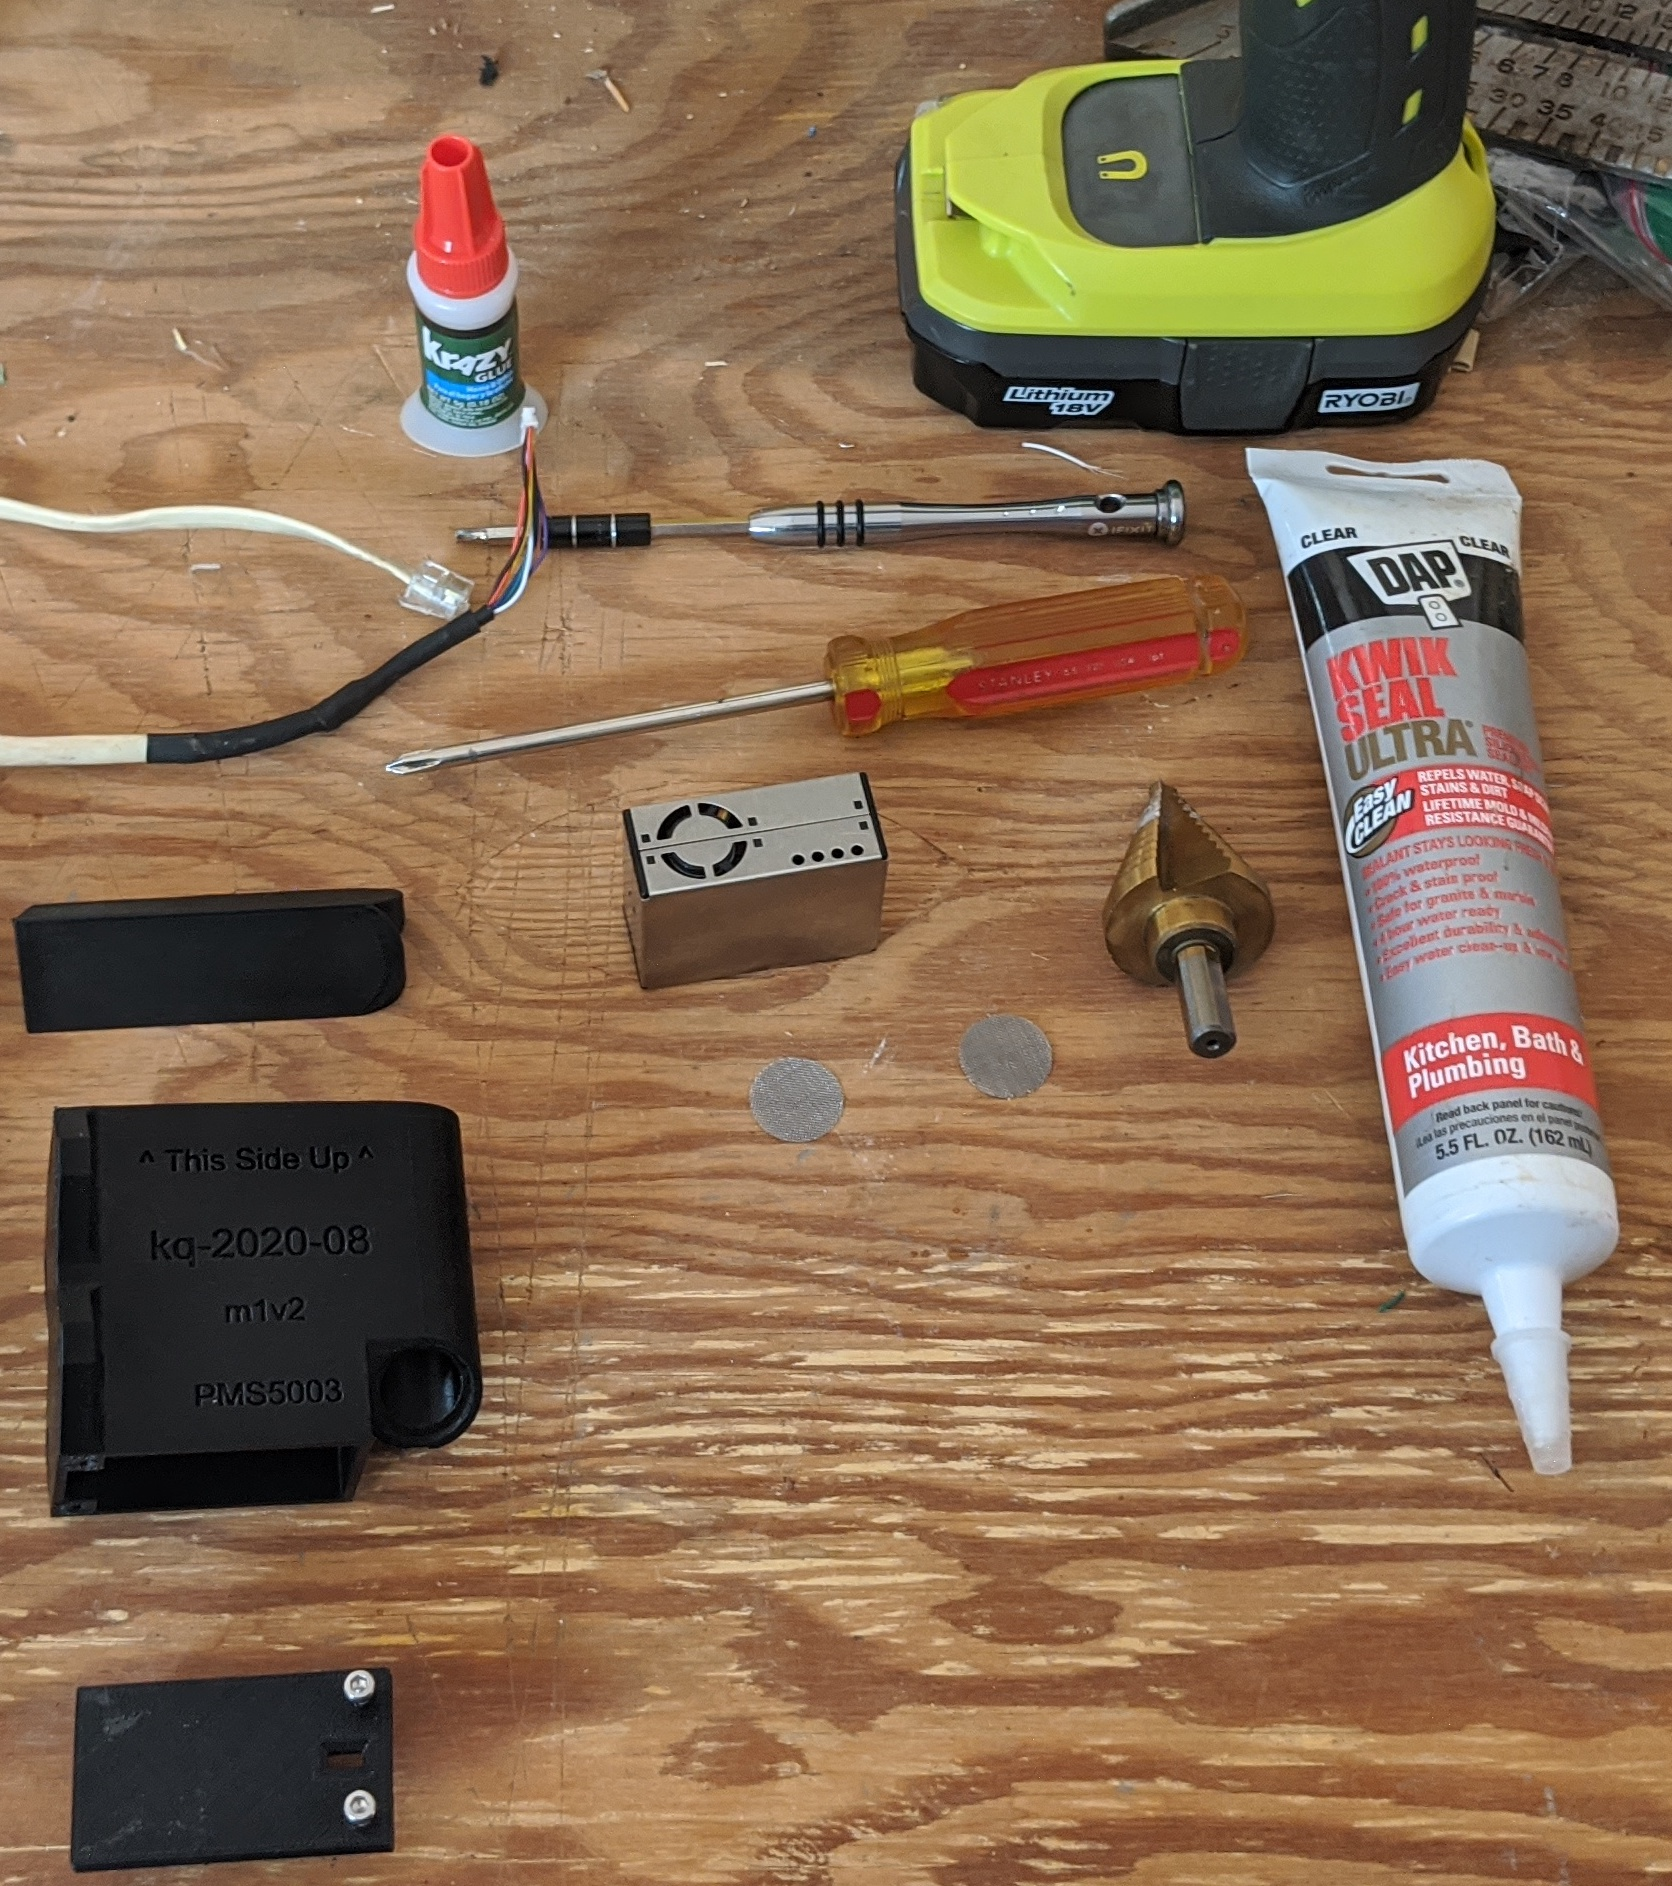 Picture showing tools/materials required for assembly